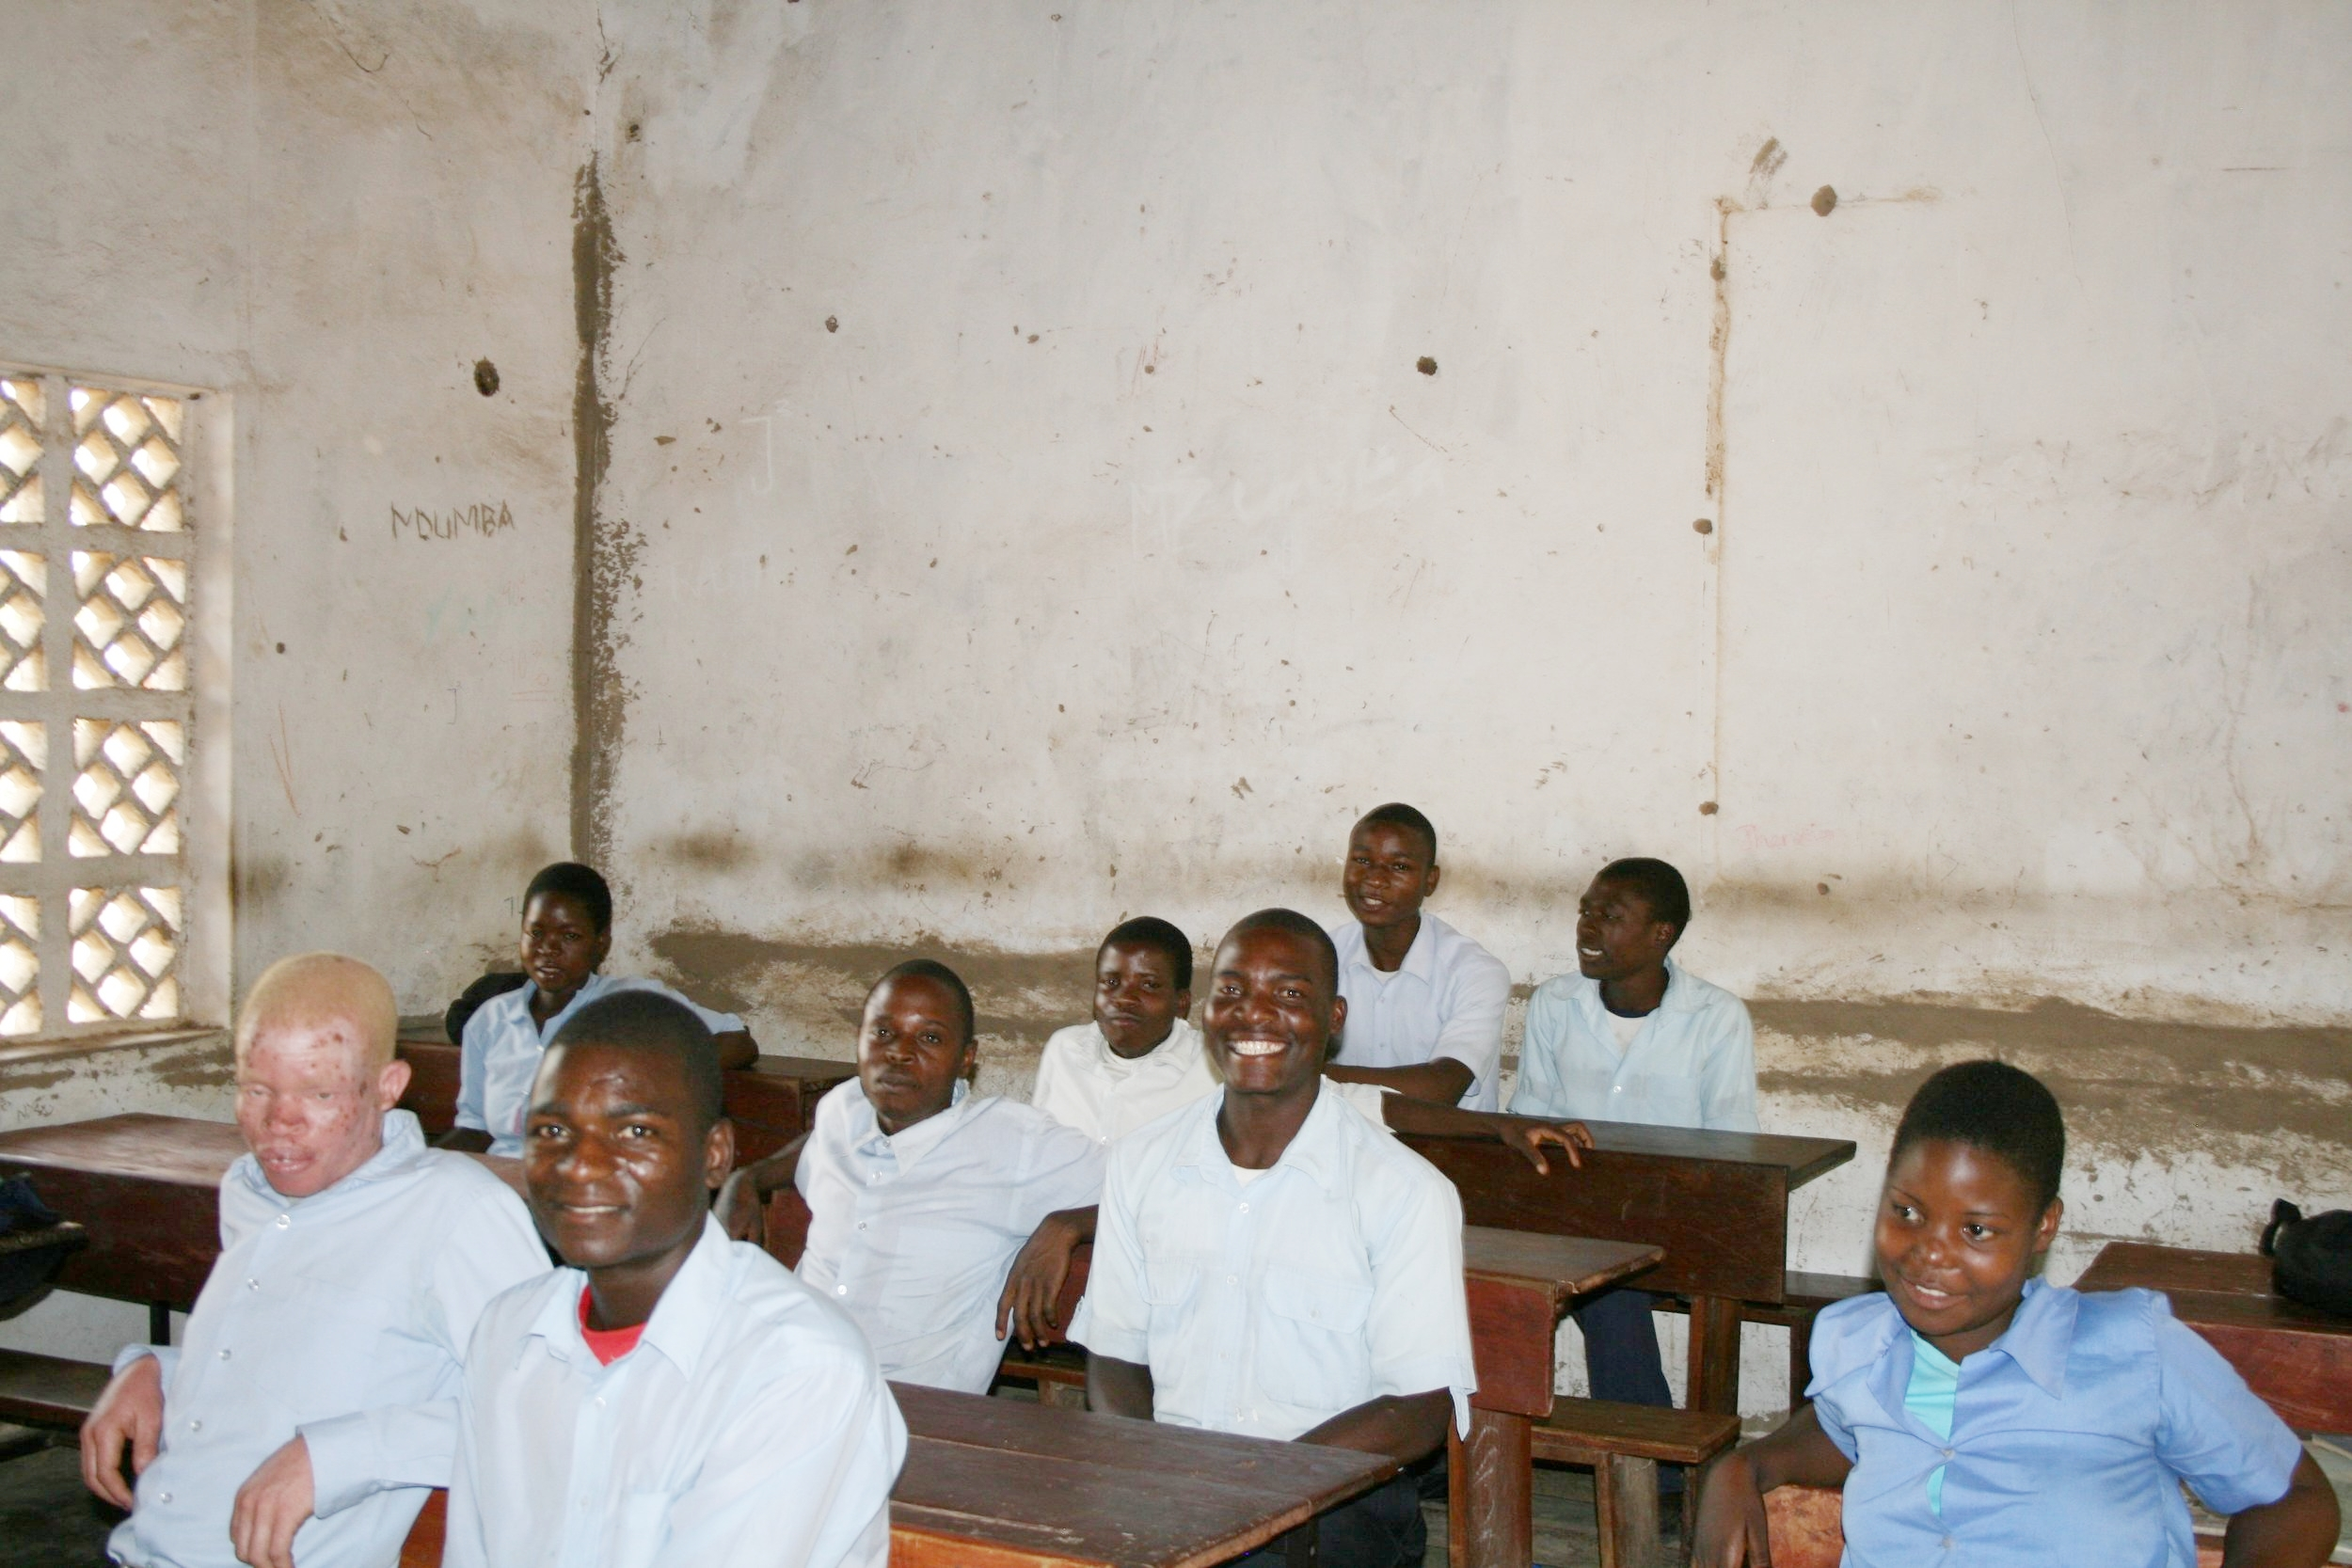 We are the Future - For Malawi.